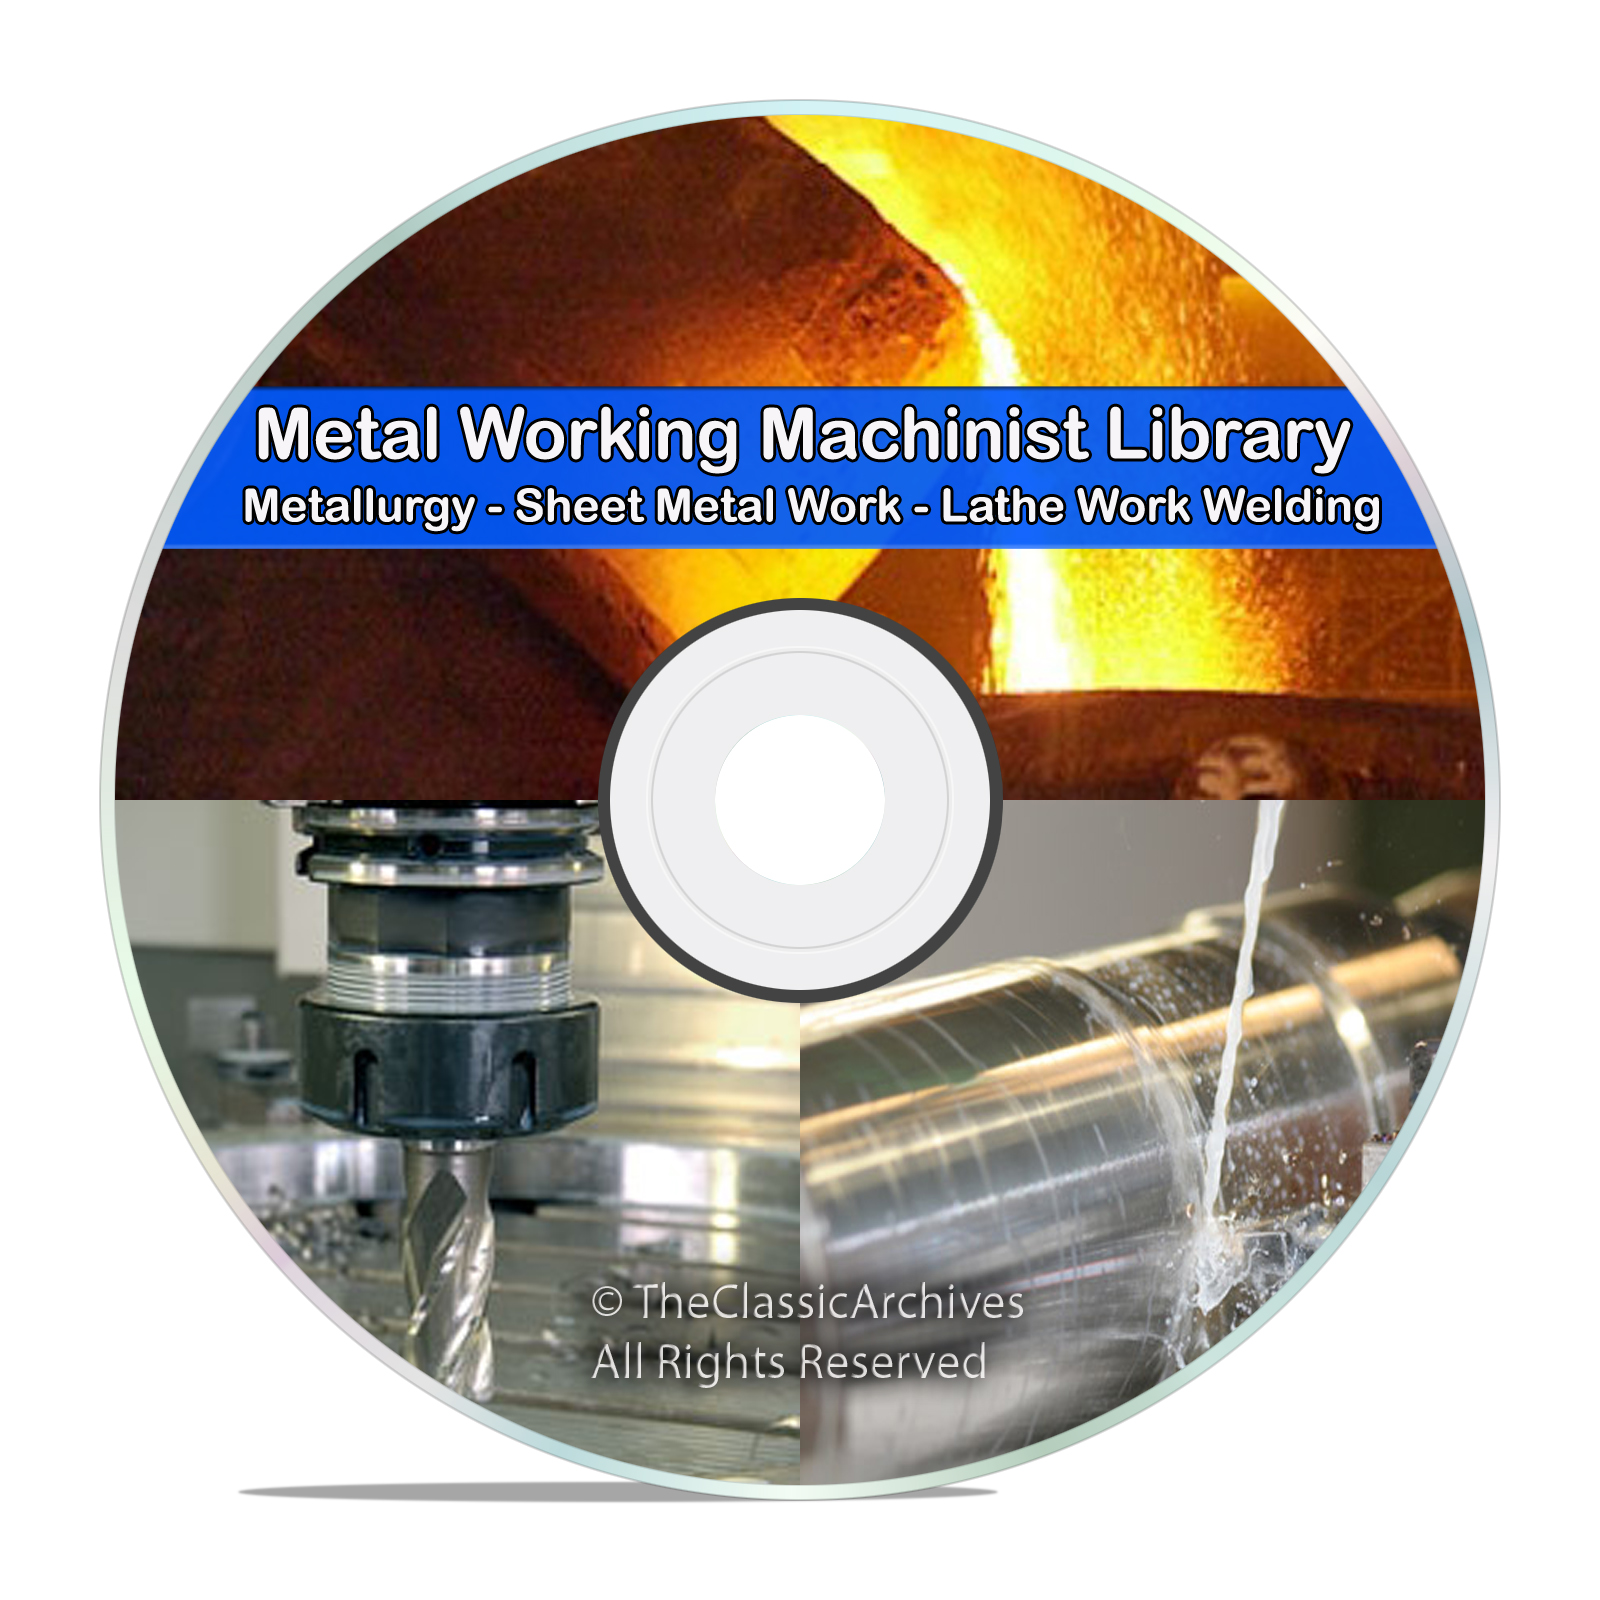 Machinist Lathe Metal Working Welding Foundry Blacksmith Metallurgy CD DVD